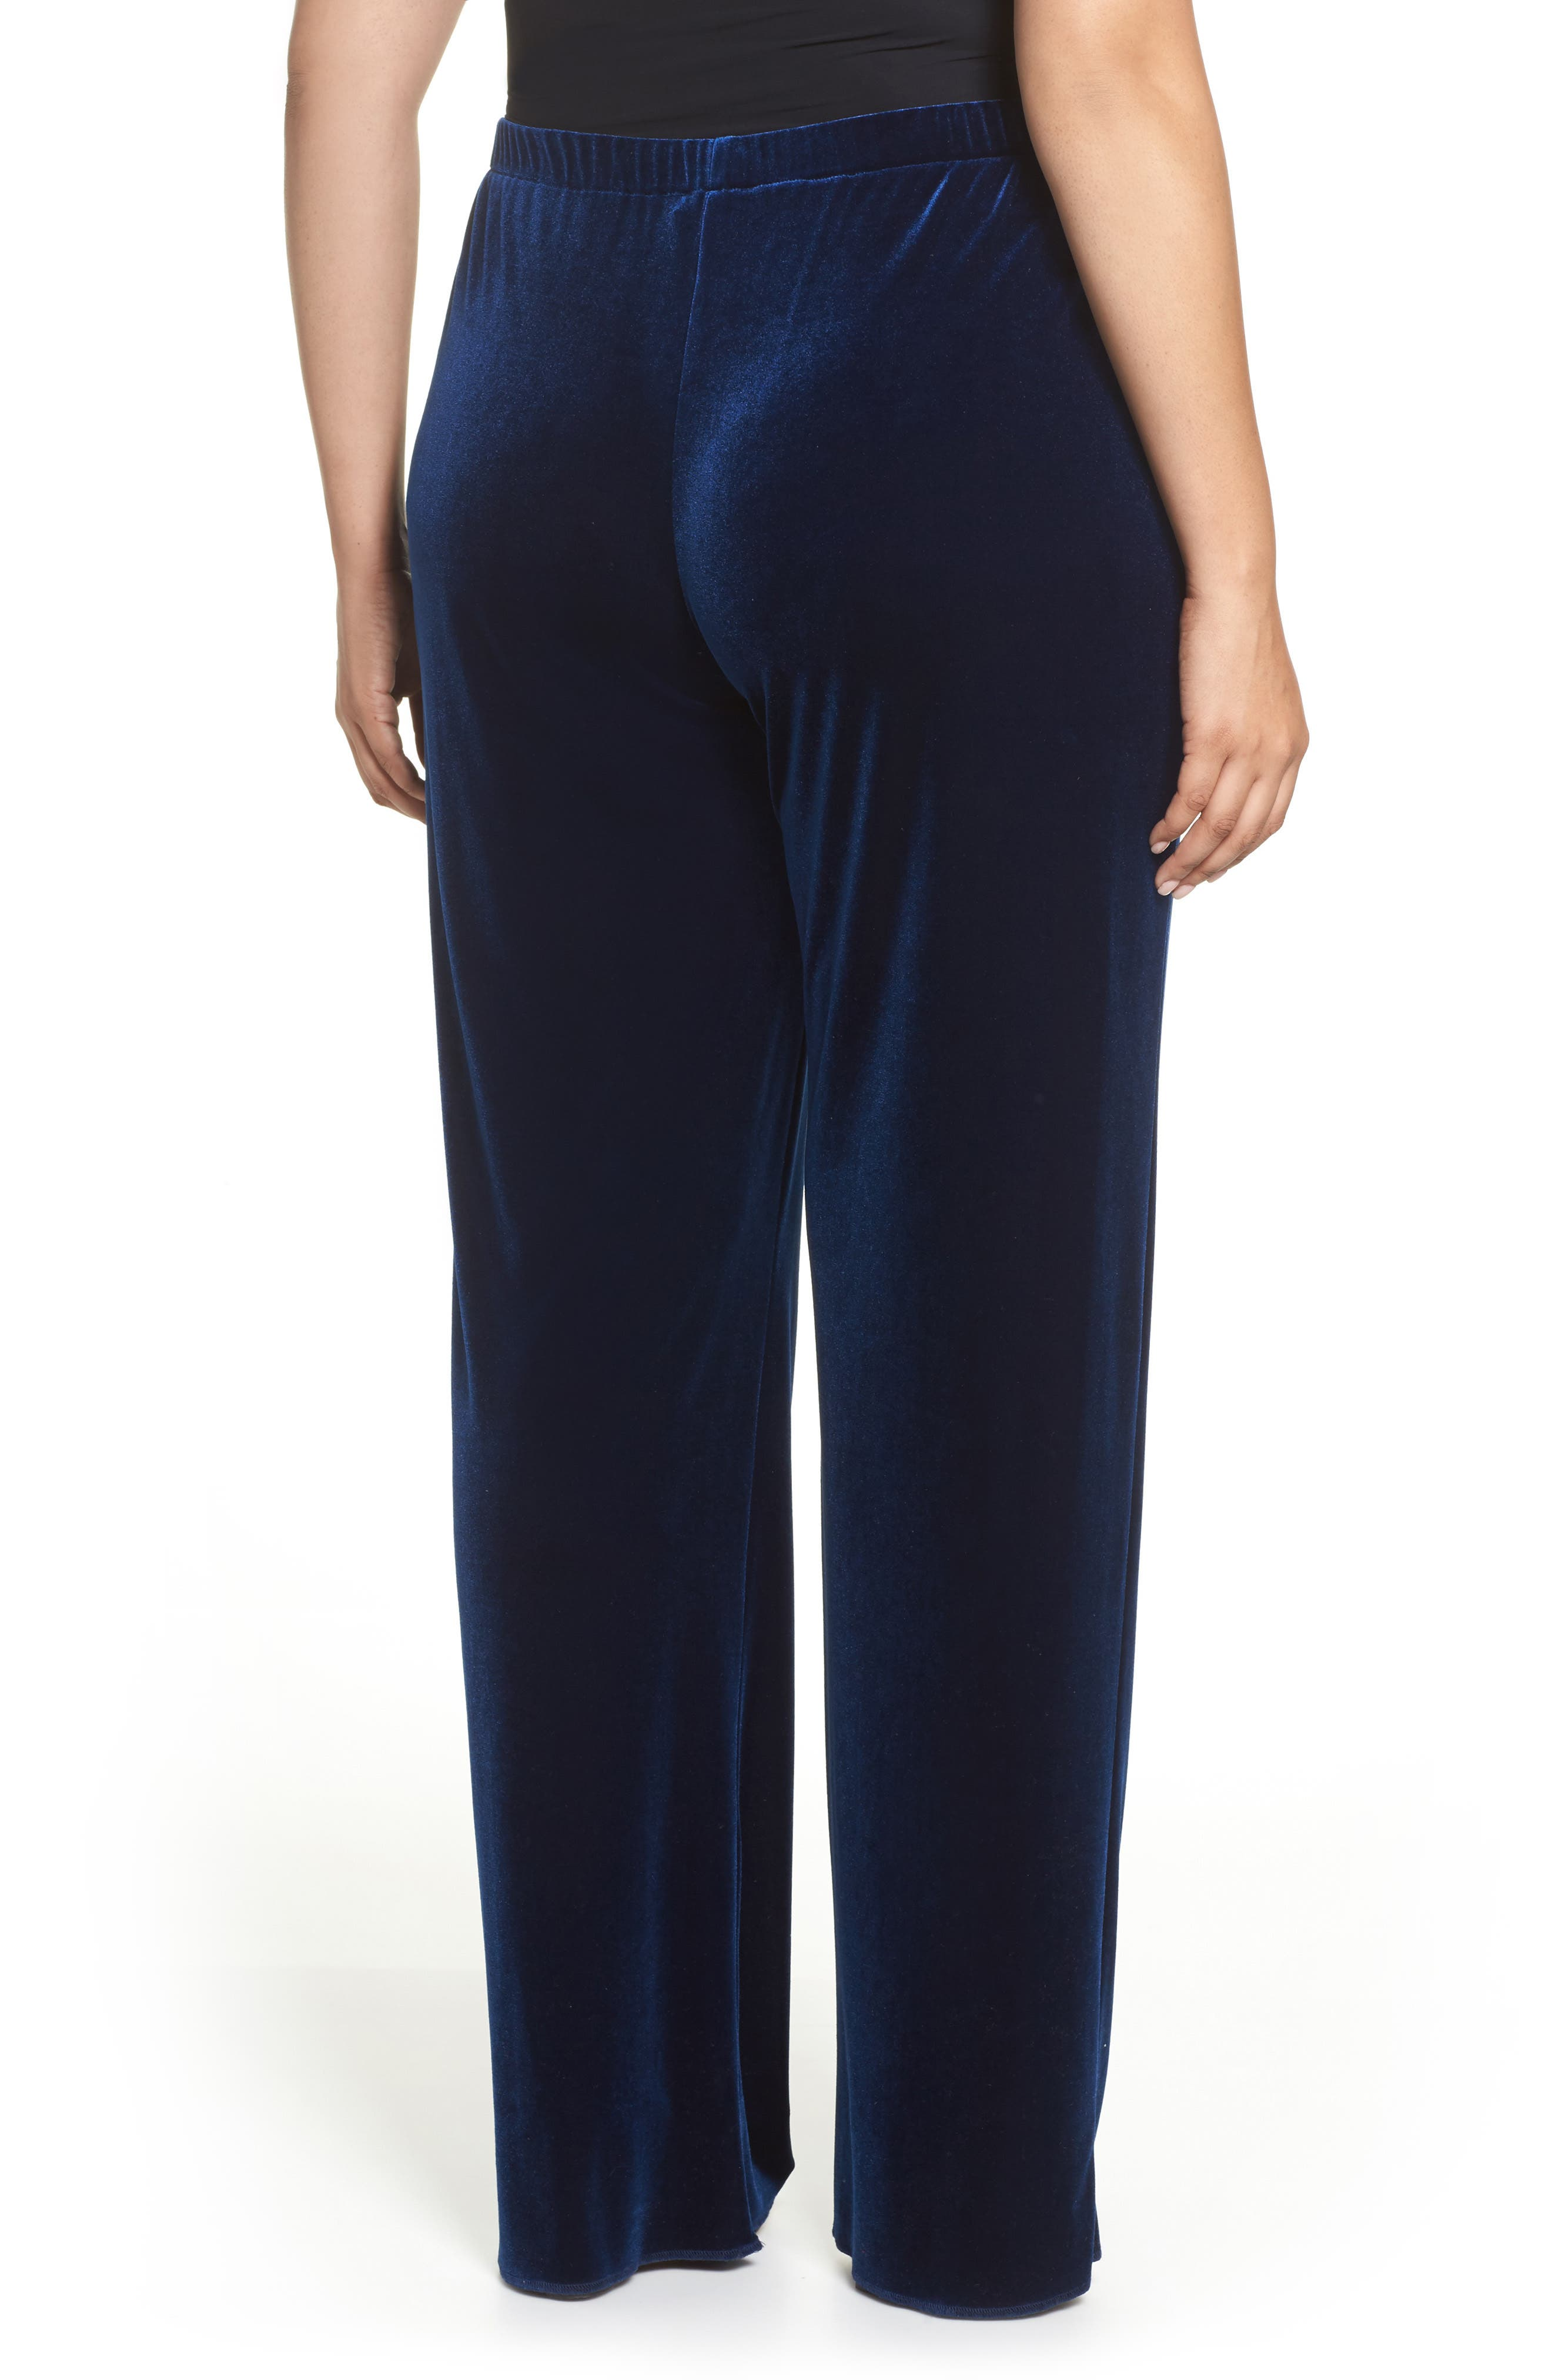 Rosita Velour Pants,                             Alternate thumbnail 2, color,                             411